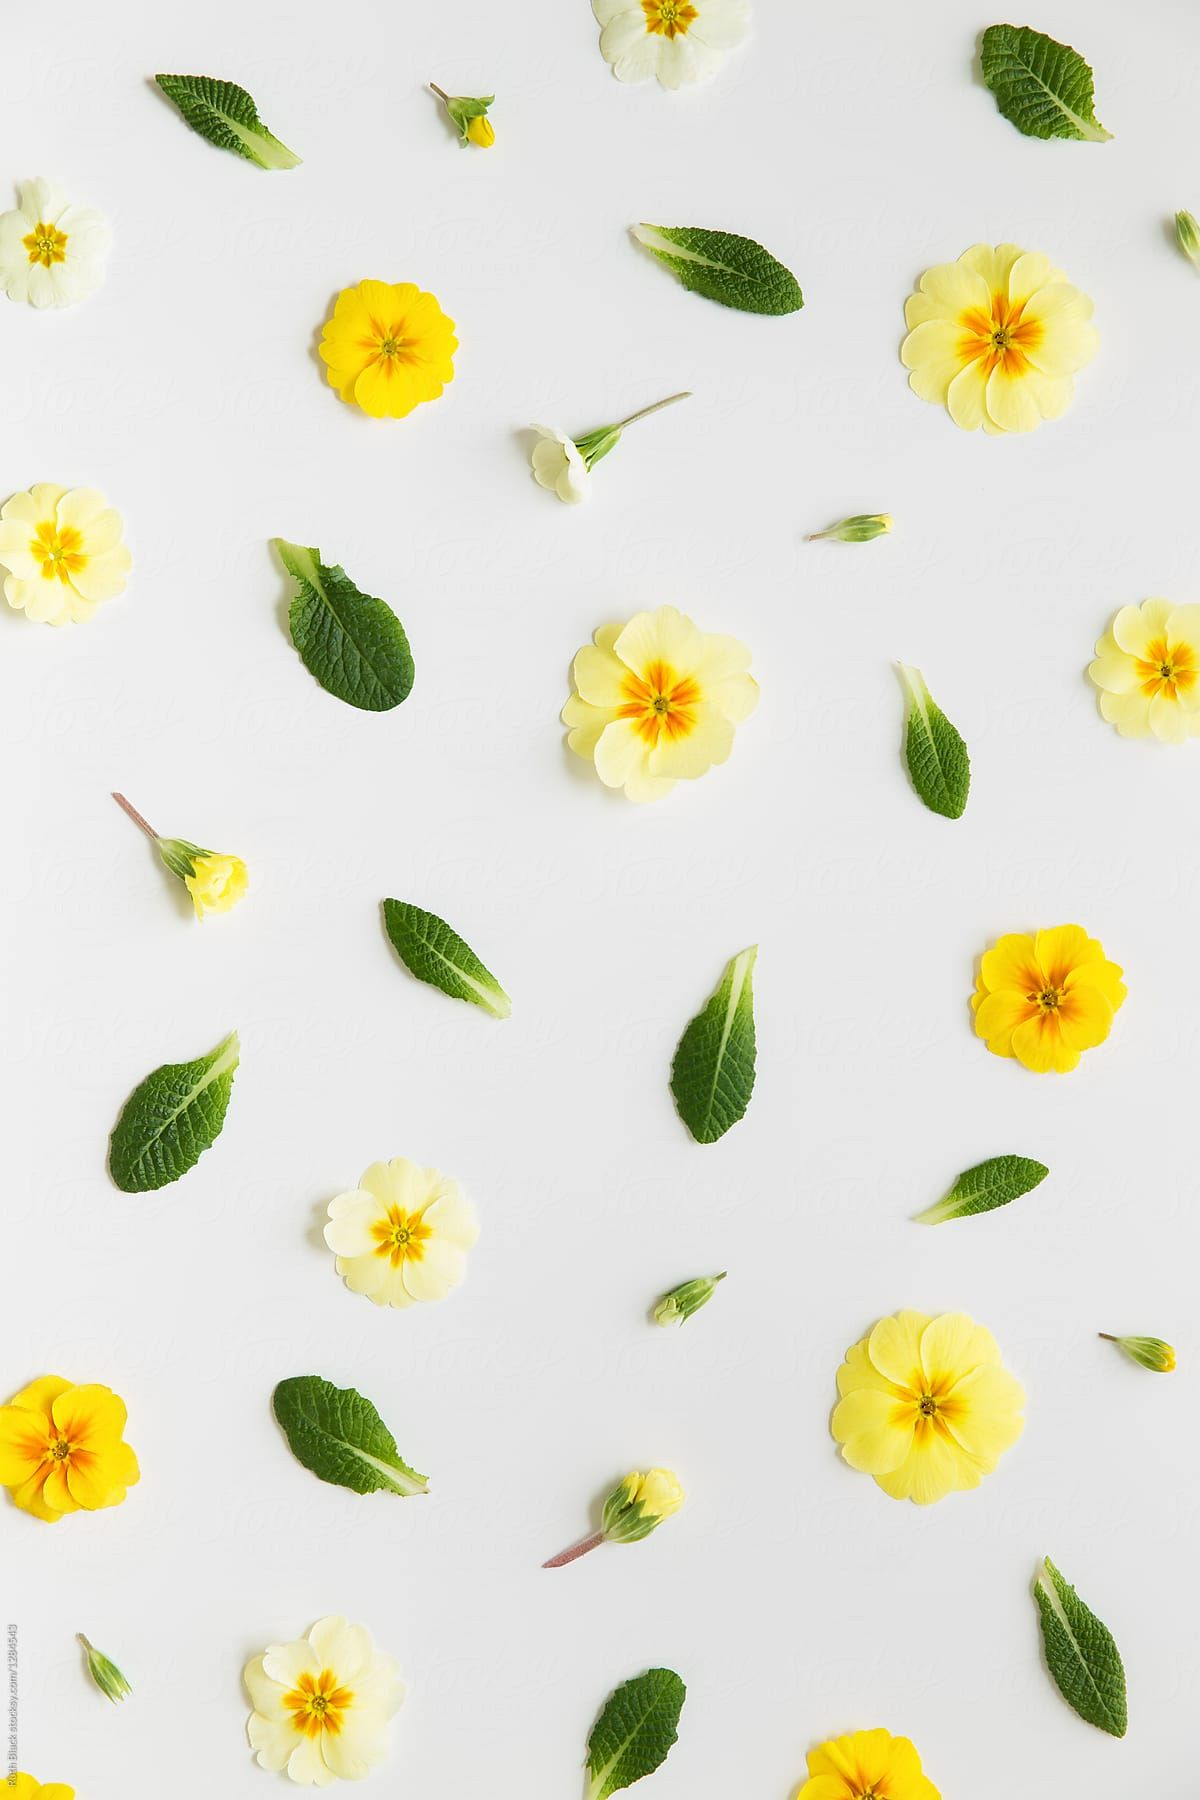 Spring Flower Background Download this highresolution